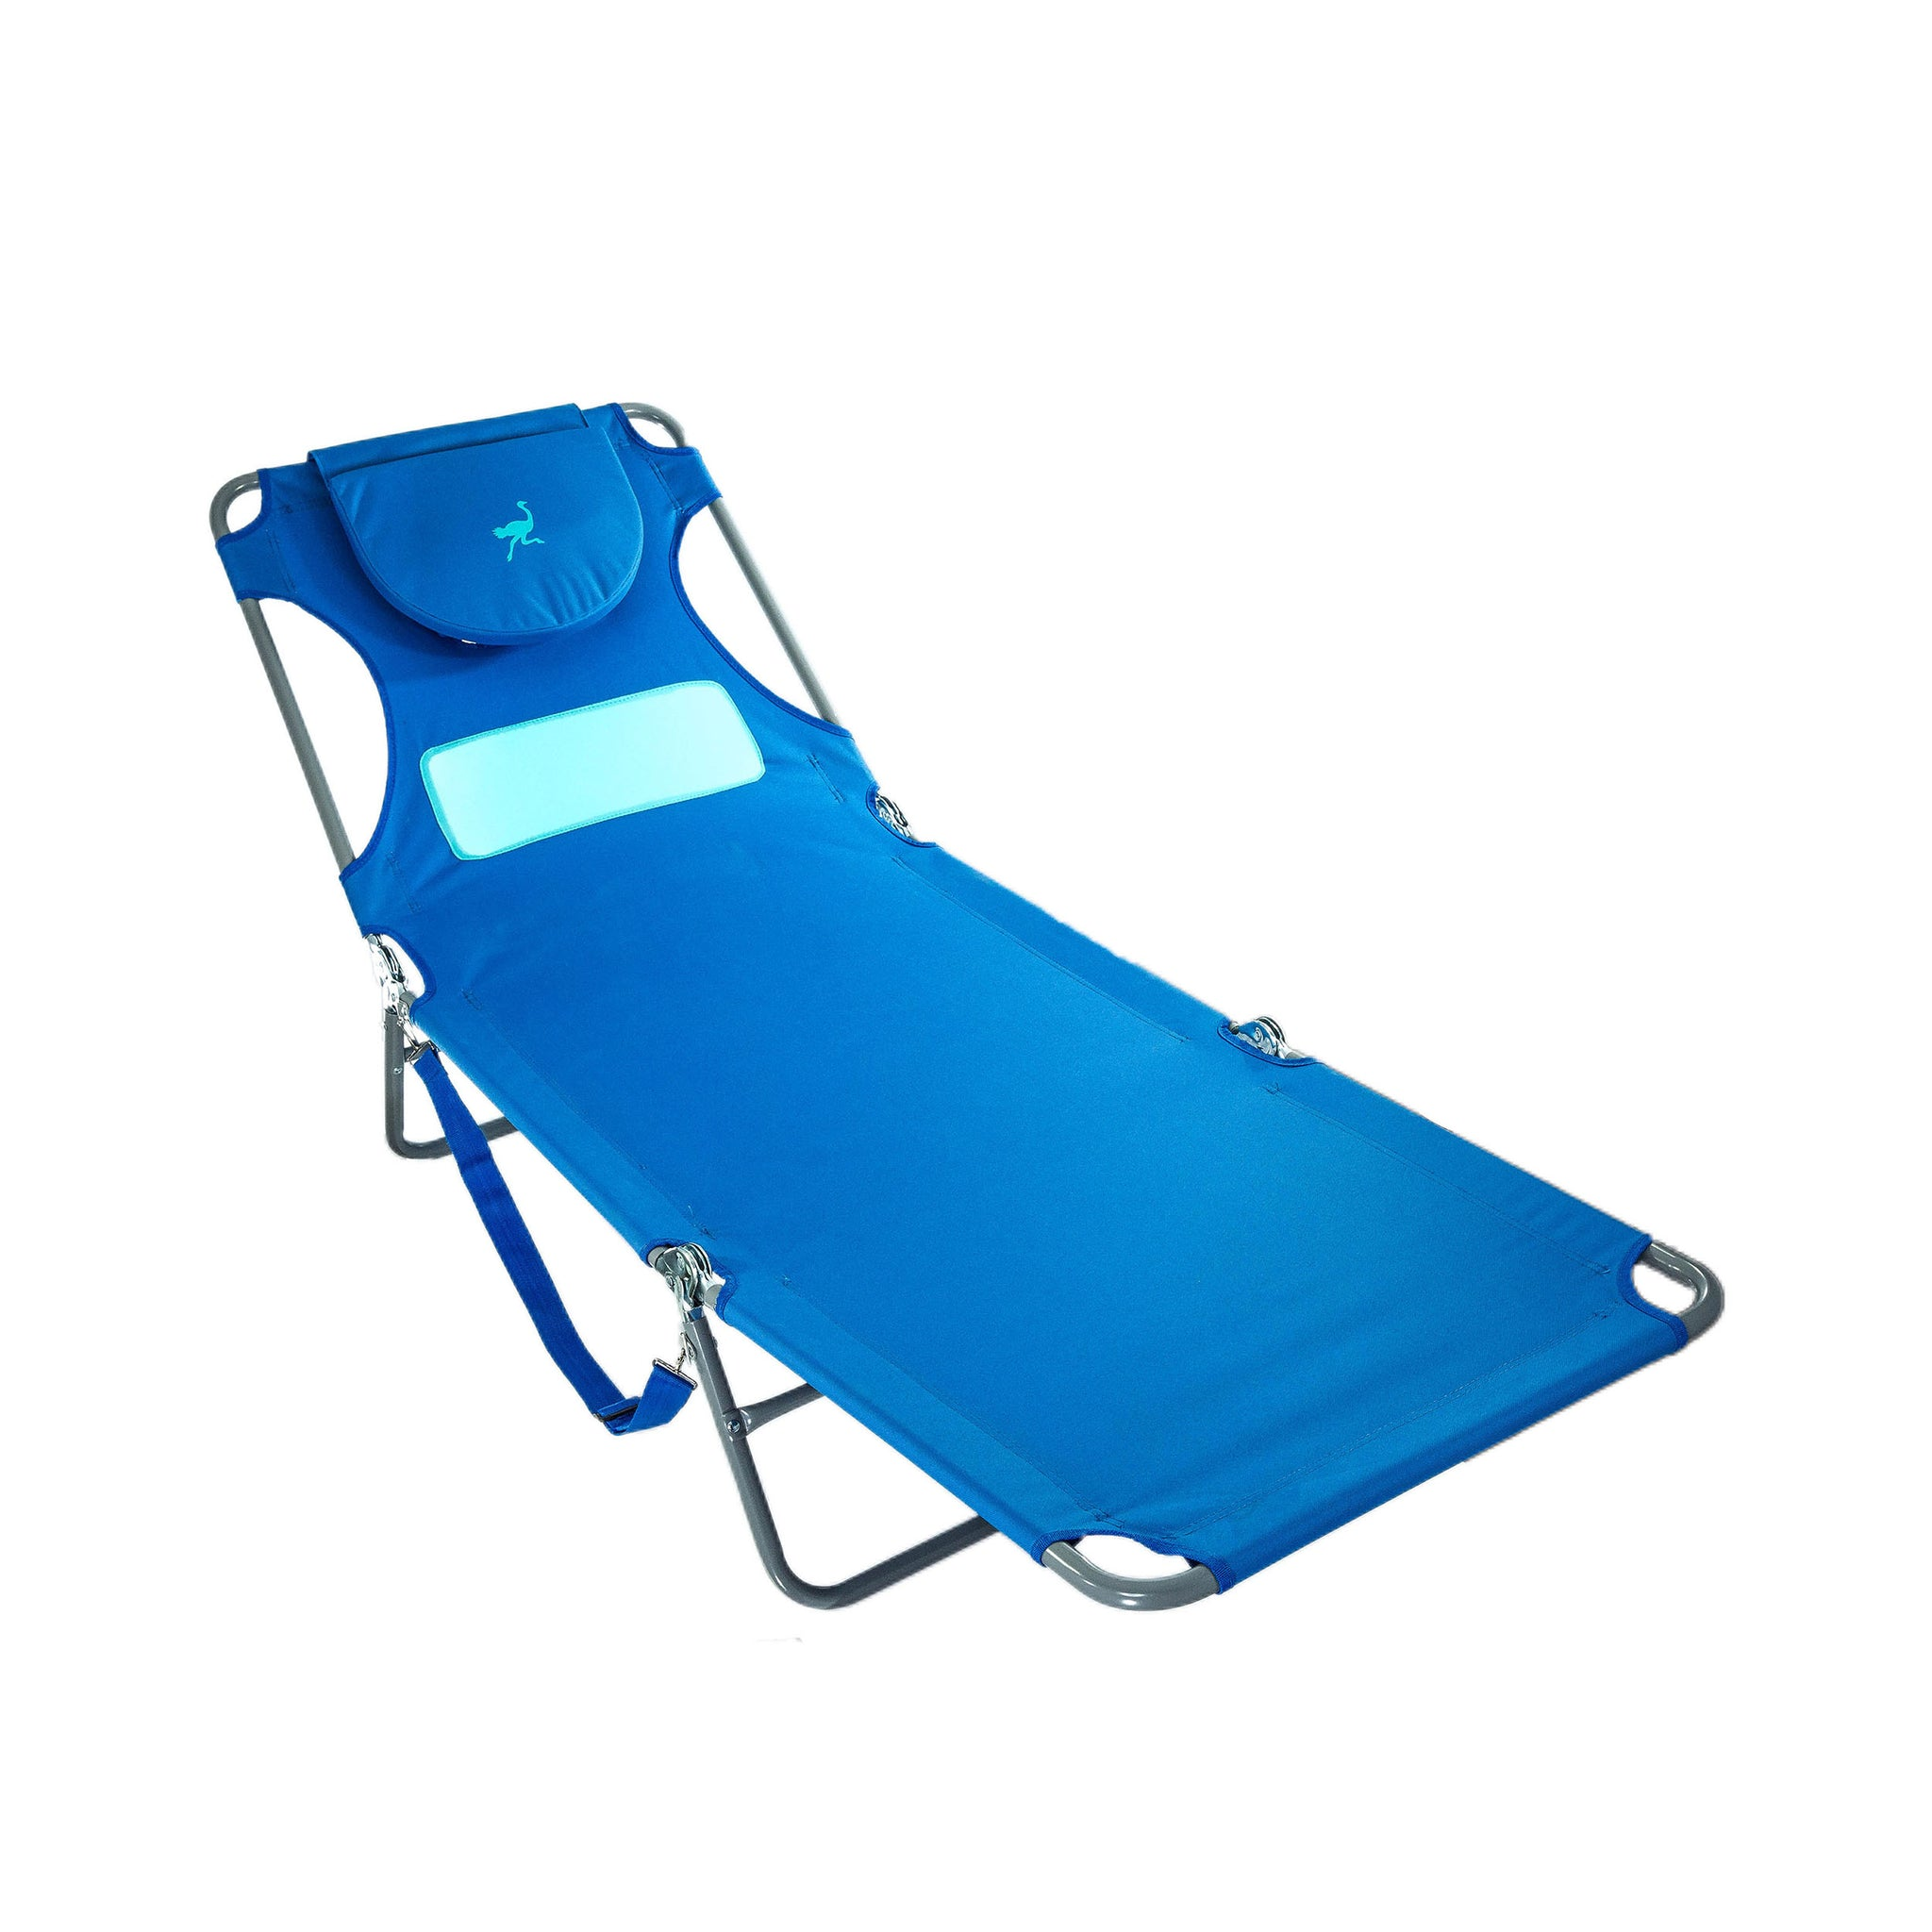 holder furniture chaise chair lounge chairs lawn ideas cup for fixed art with folding trend and clip best popular u